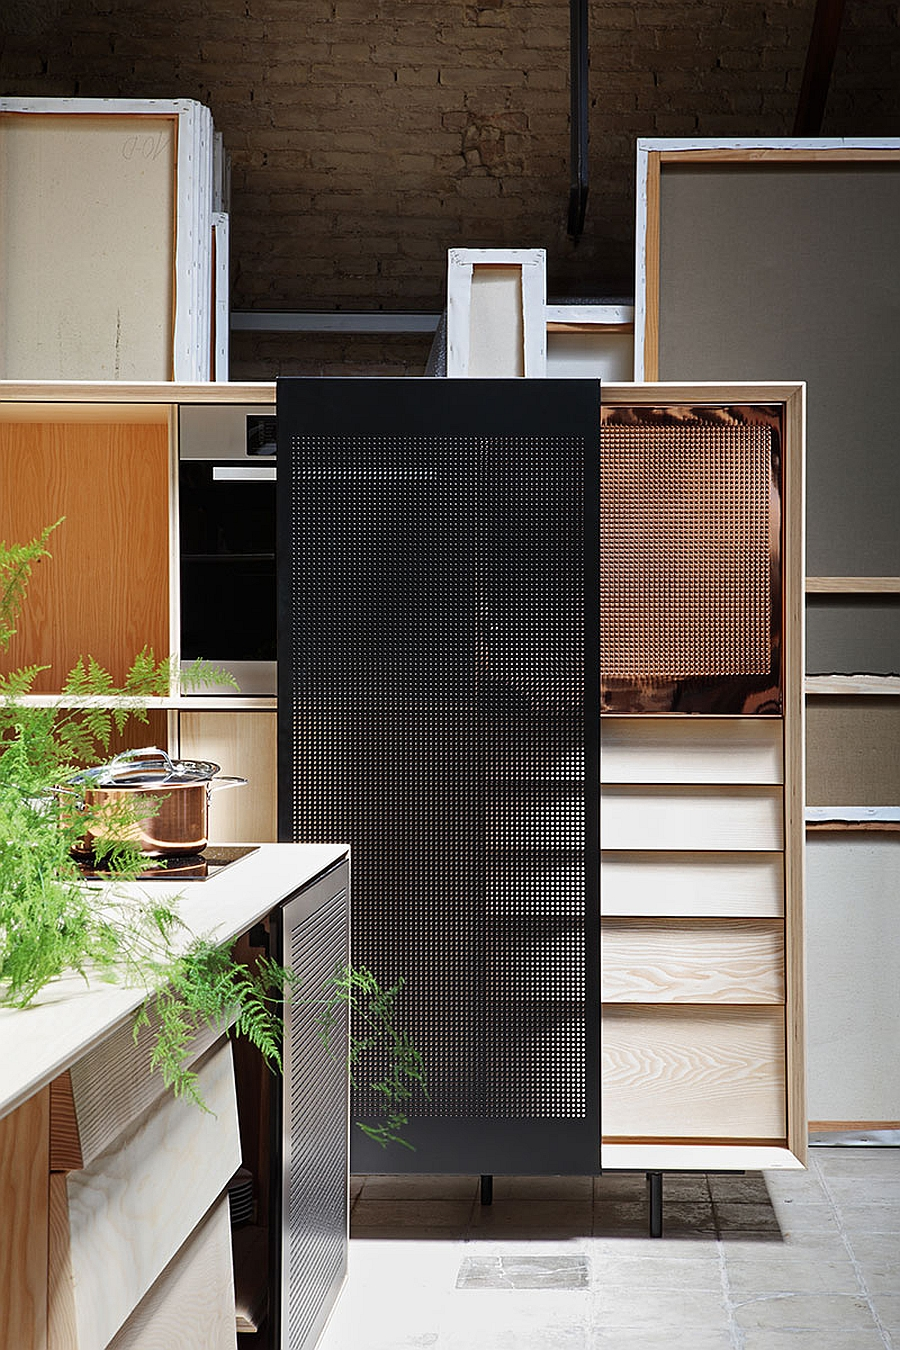 Tall wooden cabinet with sliding metal mesh door for the kitchen